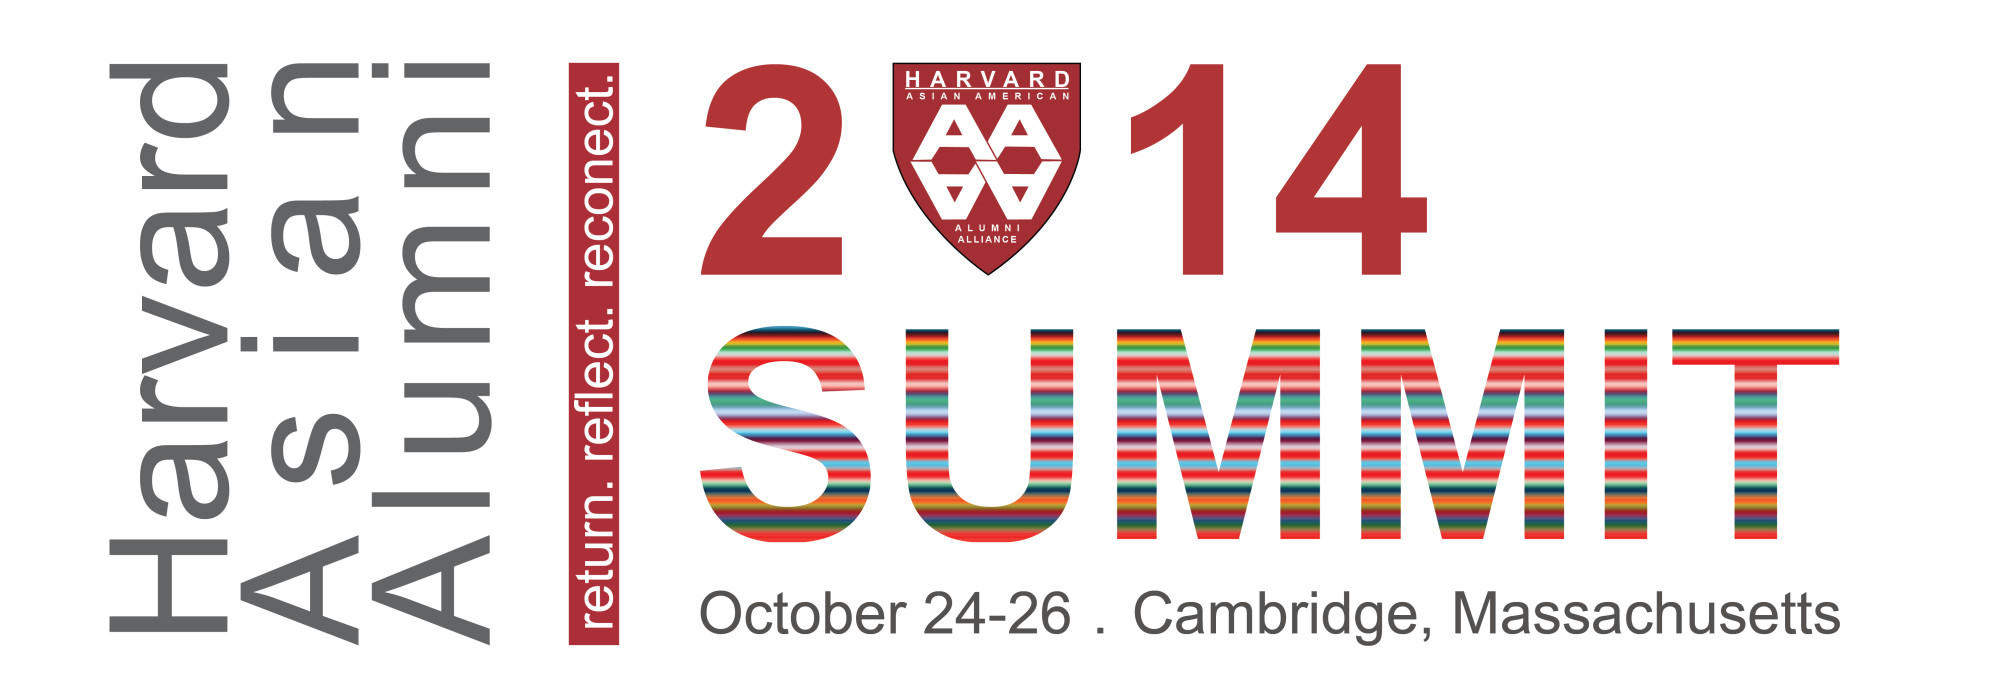 2014 Harvard Asian Alumni Summit